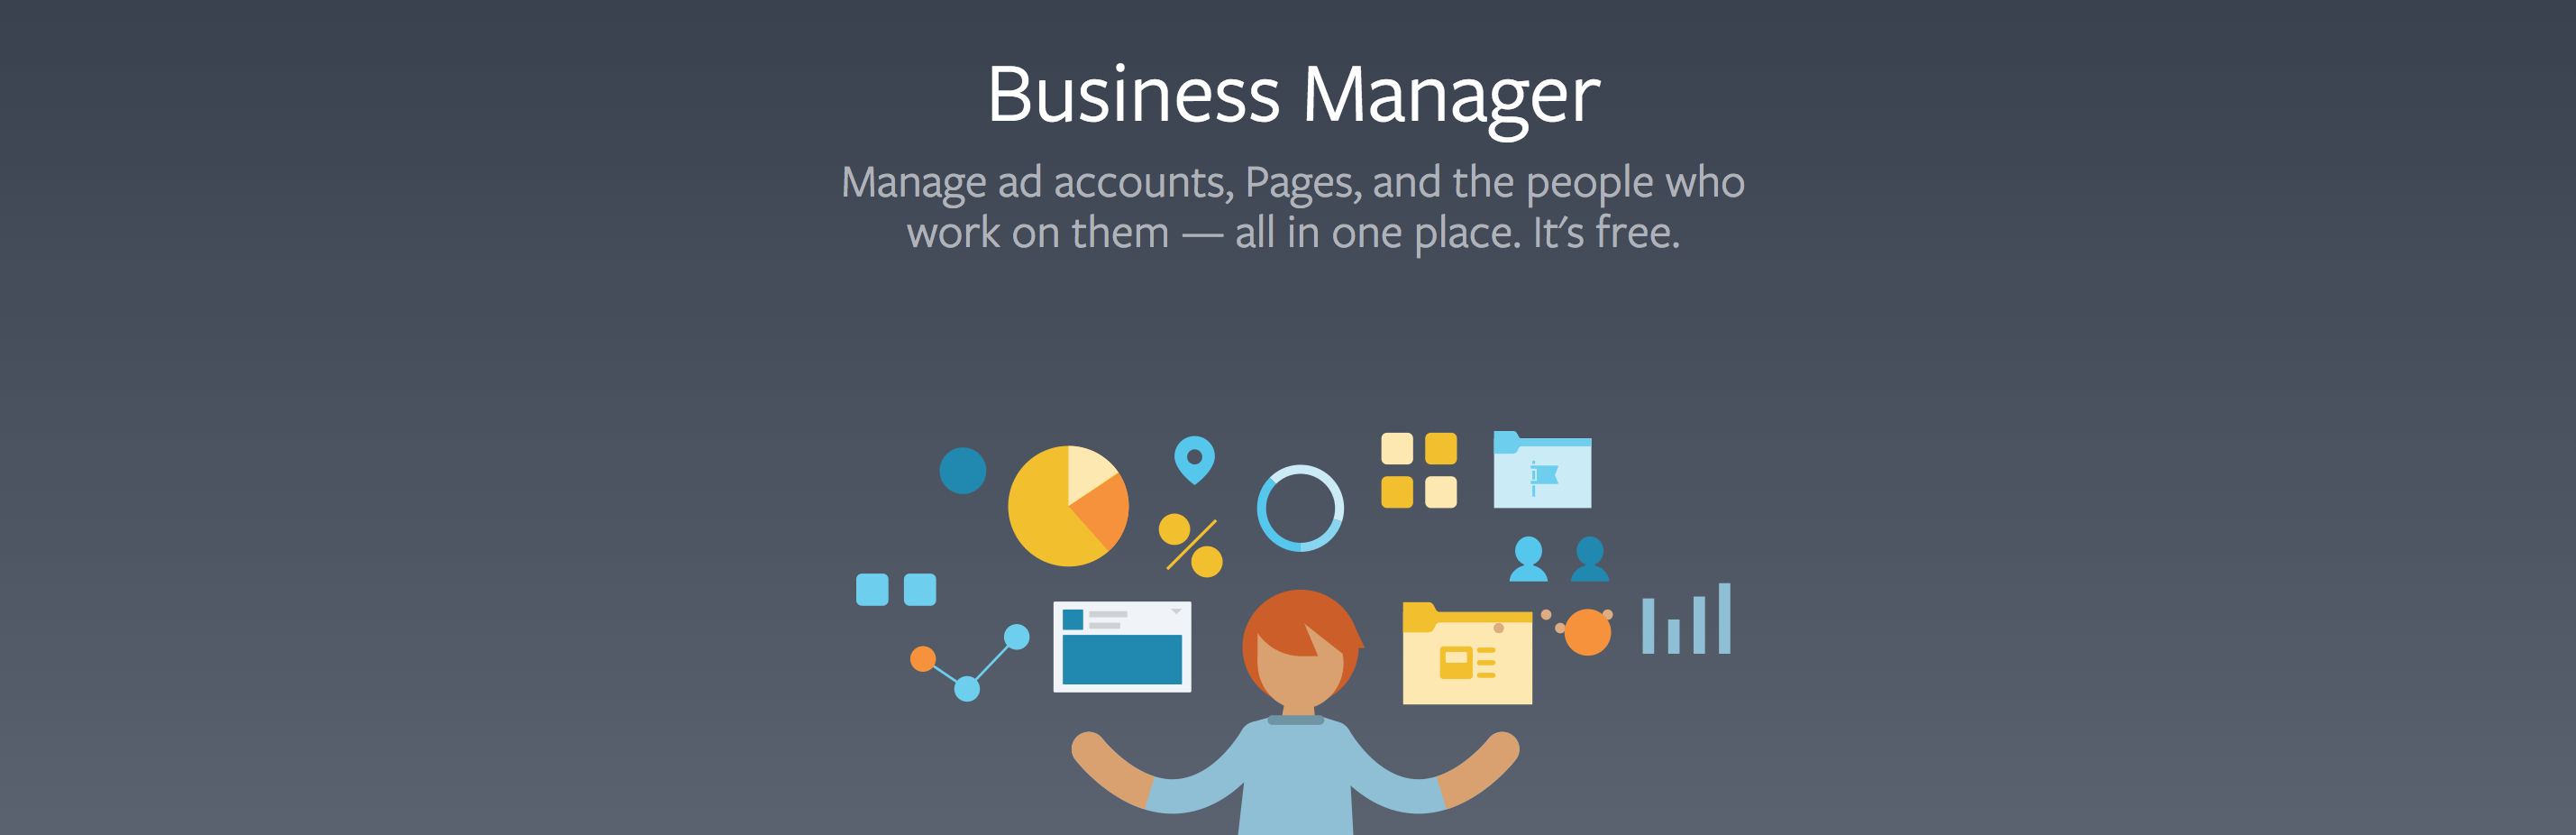 facebooki turundus-facebook business manager